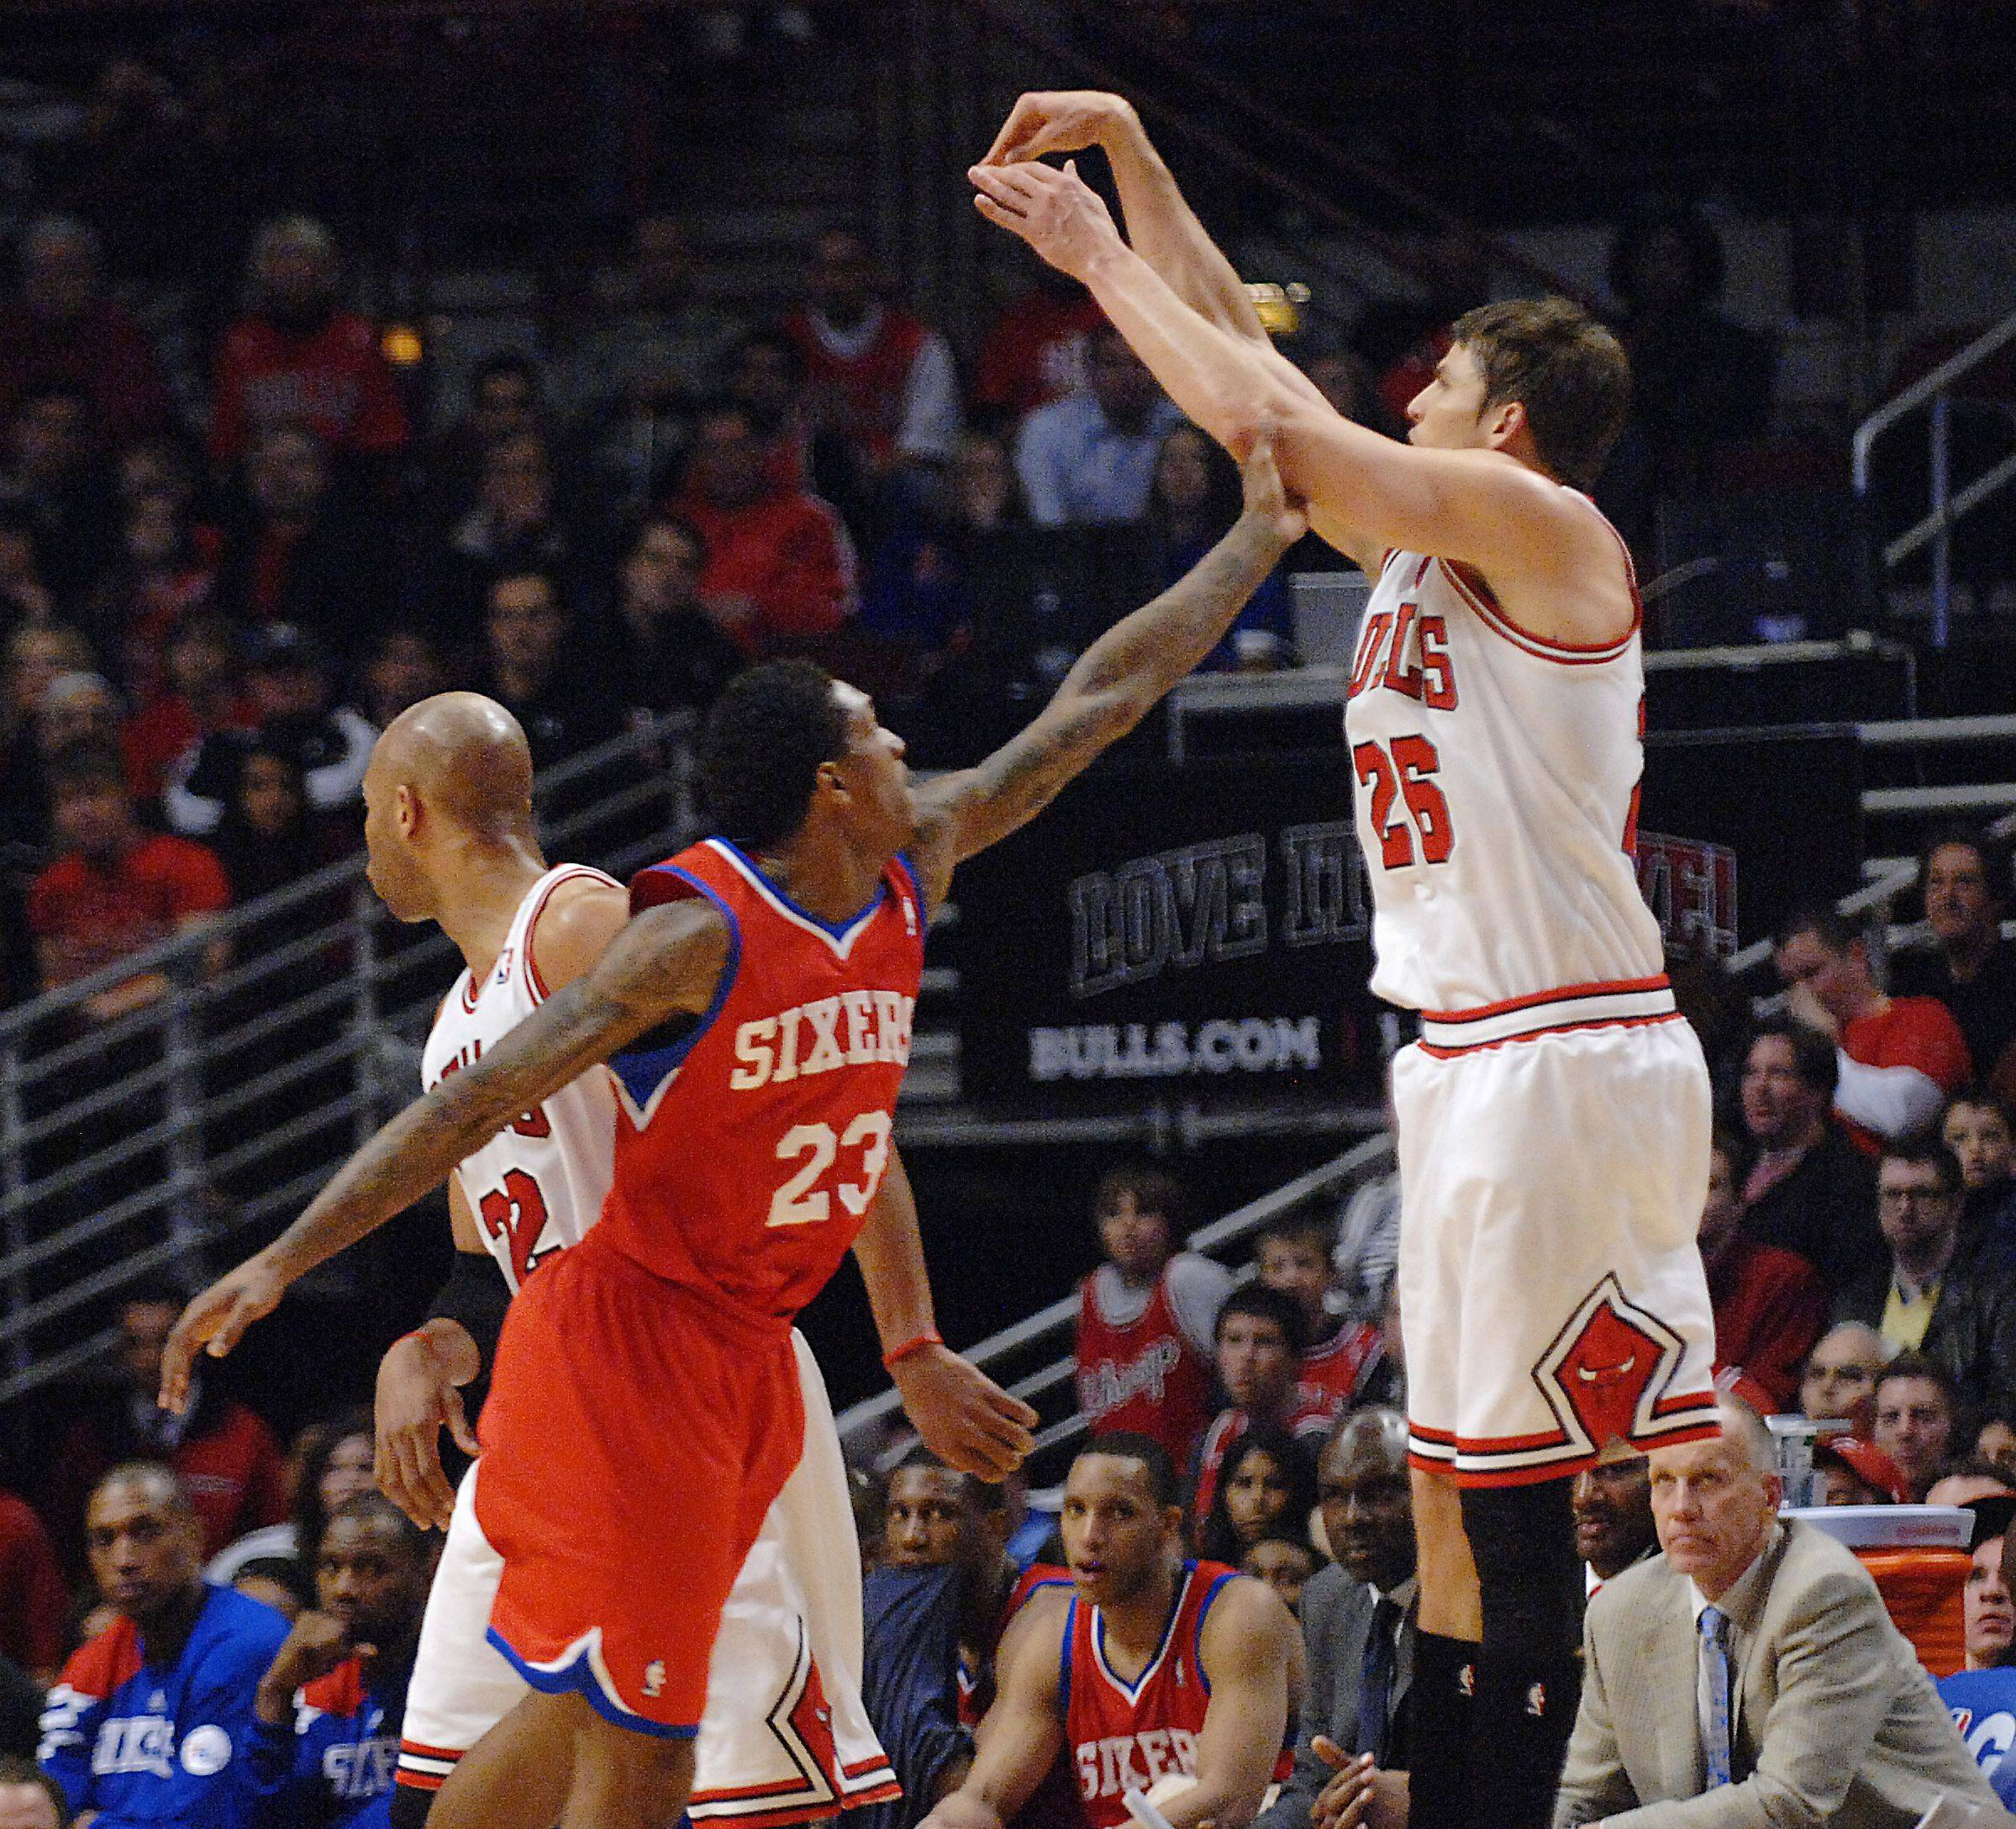 The Bulls' Kyle Korver, who suffered a rough first-round playoff series against the Sixers, has been traded to the Hawks, according to multiple reports.